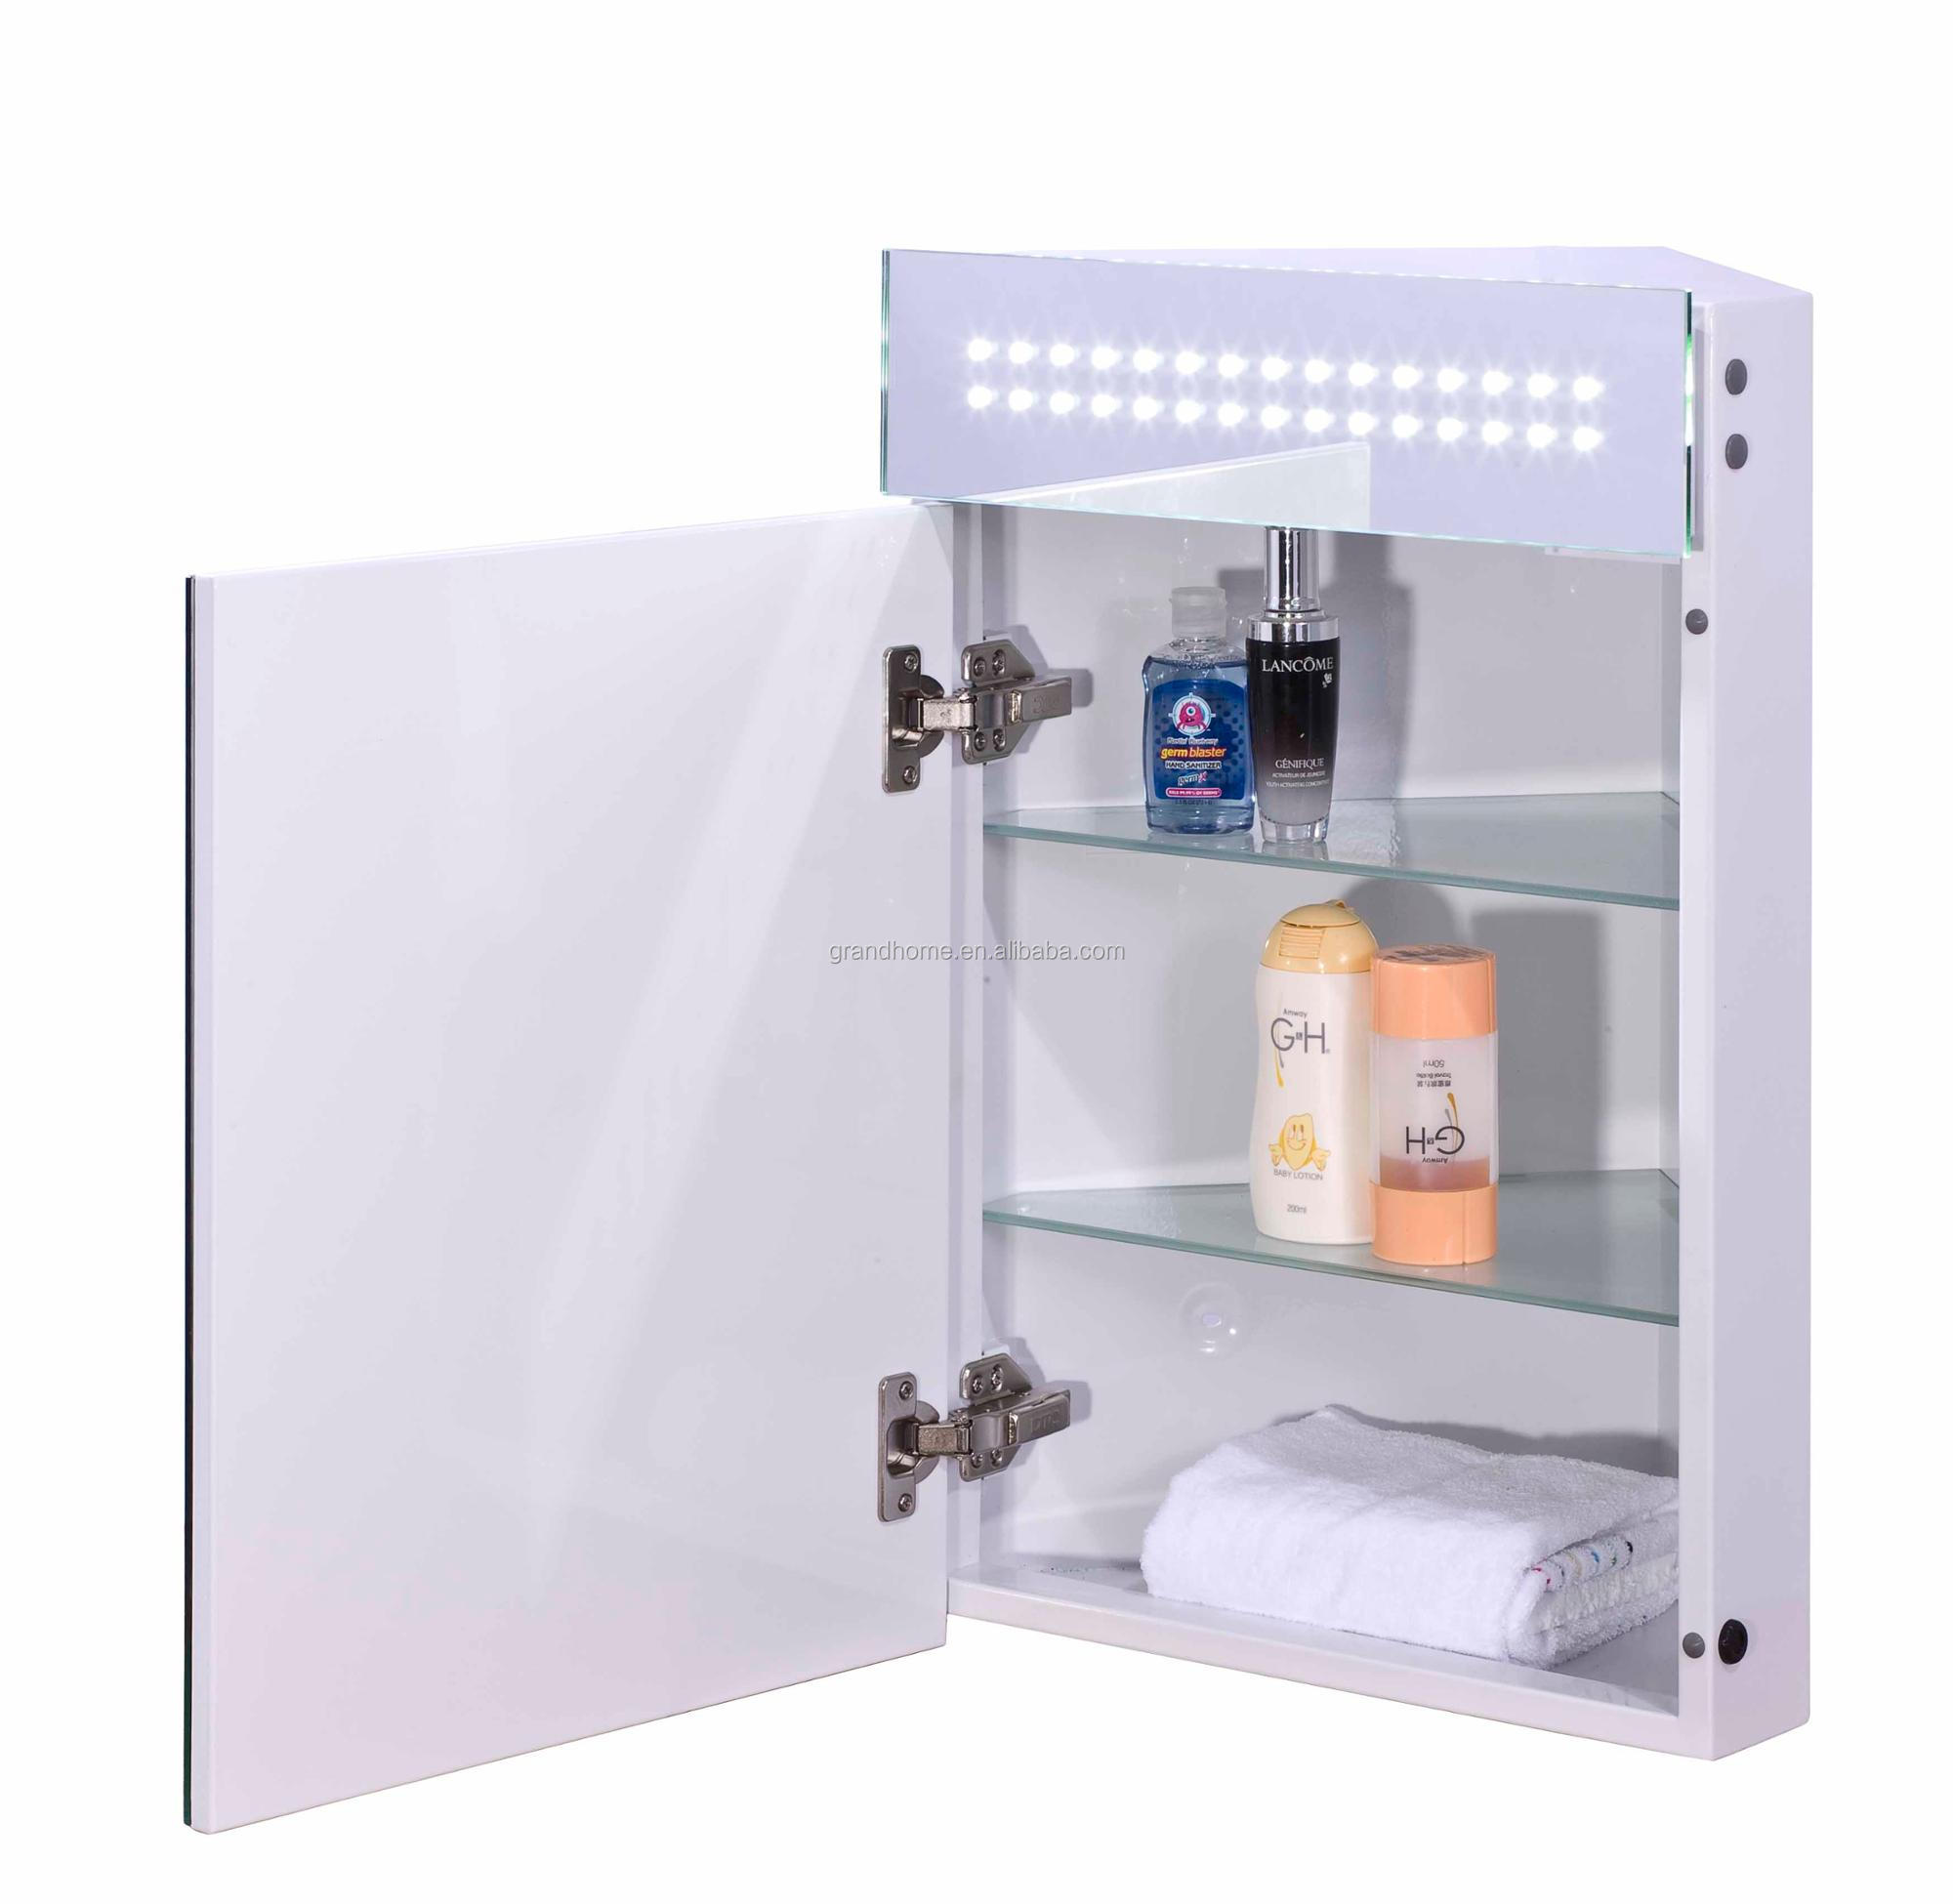 Factory Price Wall Mounted Triangle Mirrored Cabinet Bathroom Led Light Corner Cabinet Buy Corner Cabinet Lighted Medicine Cabinet Led Light Cabinet Product On Alibaba Com